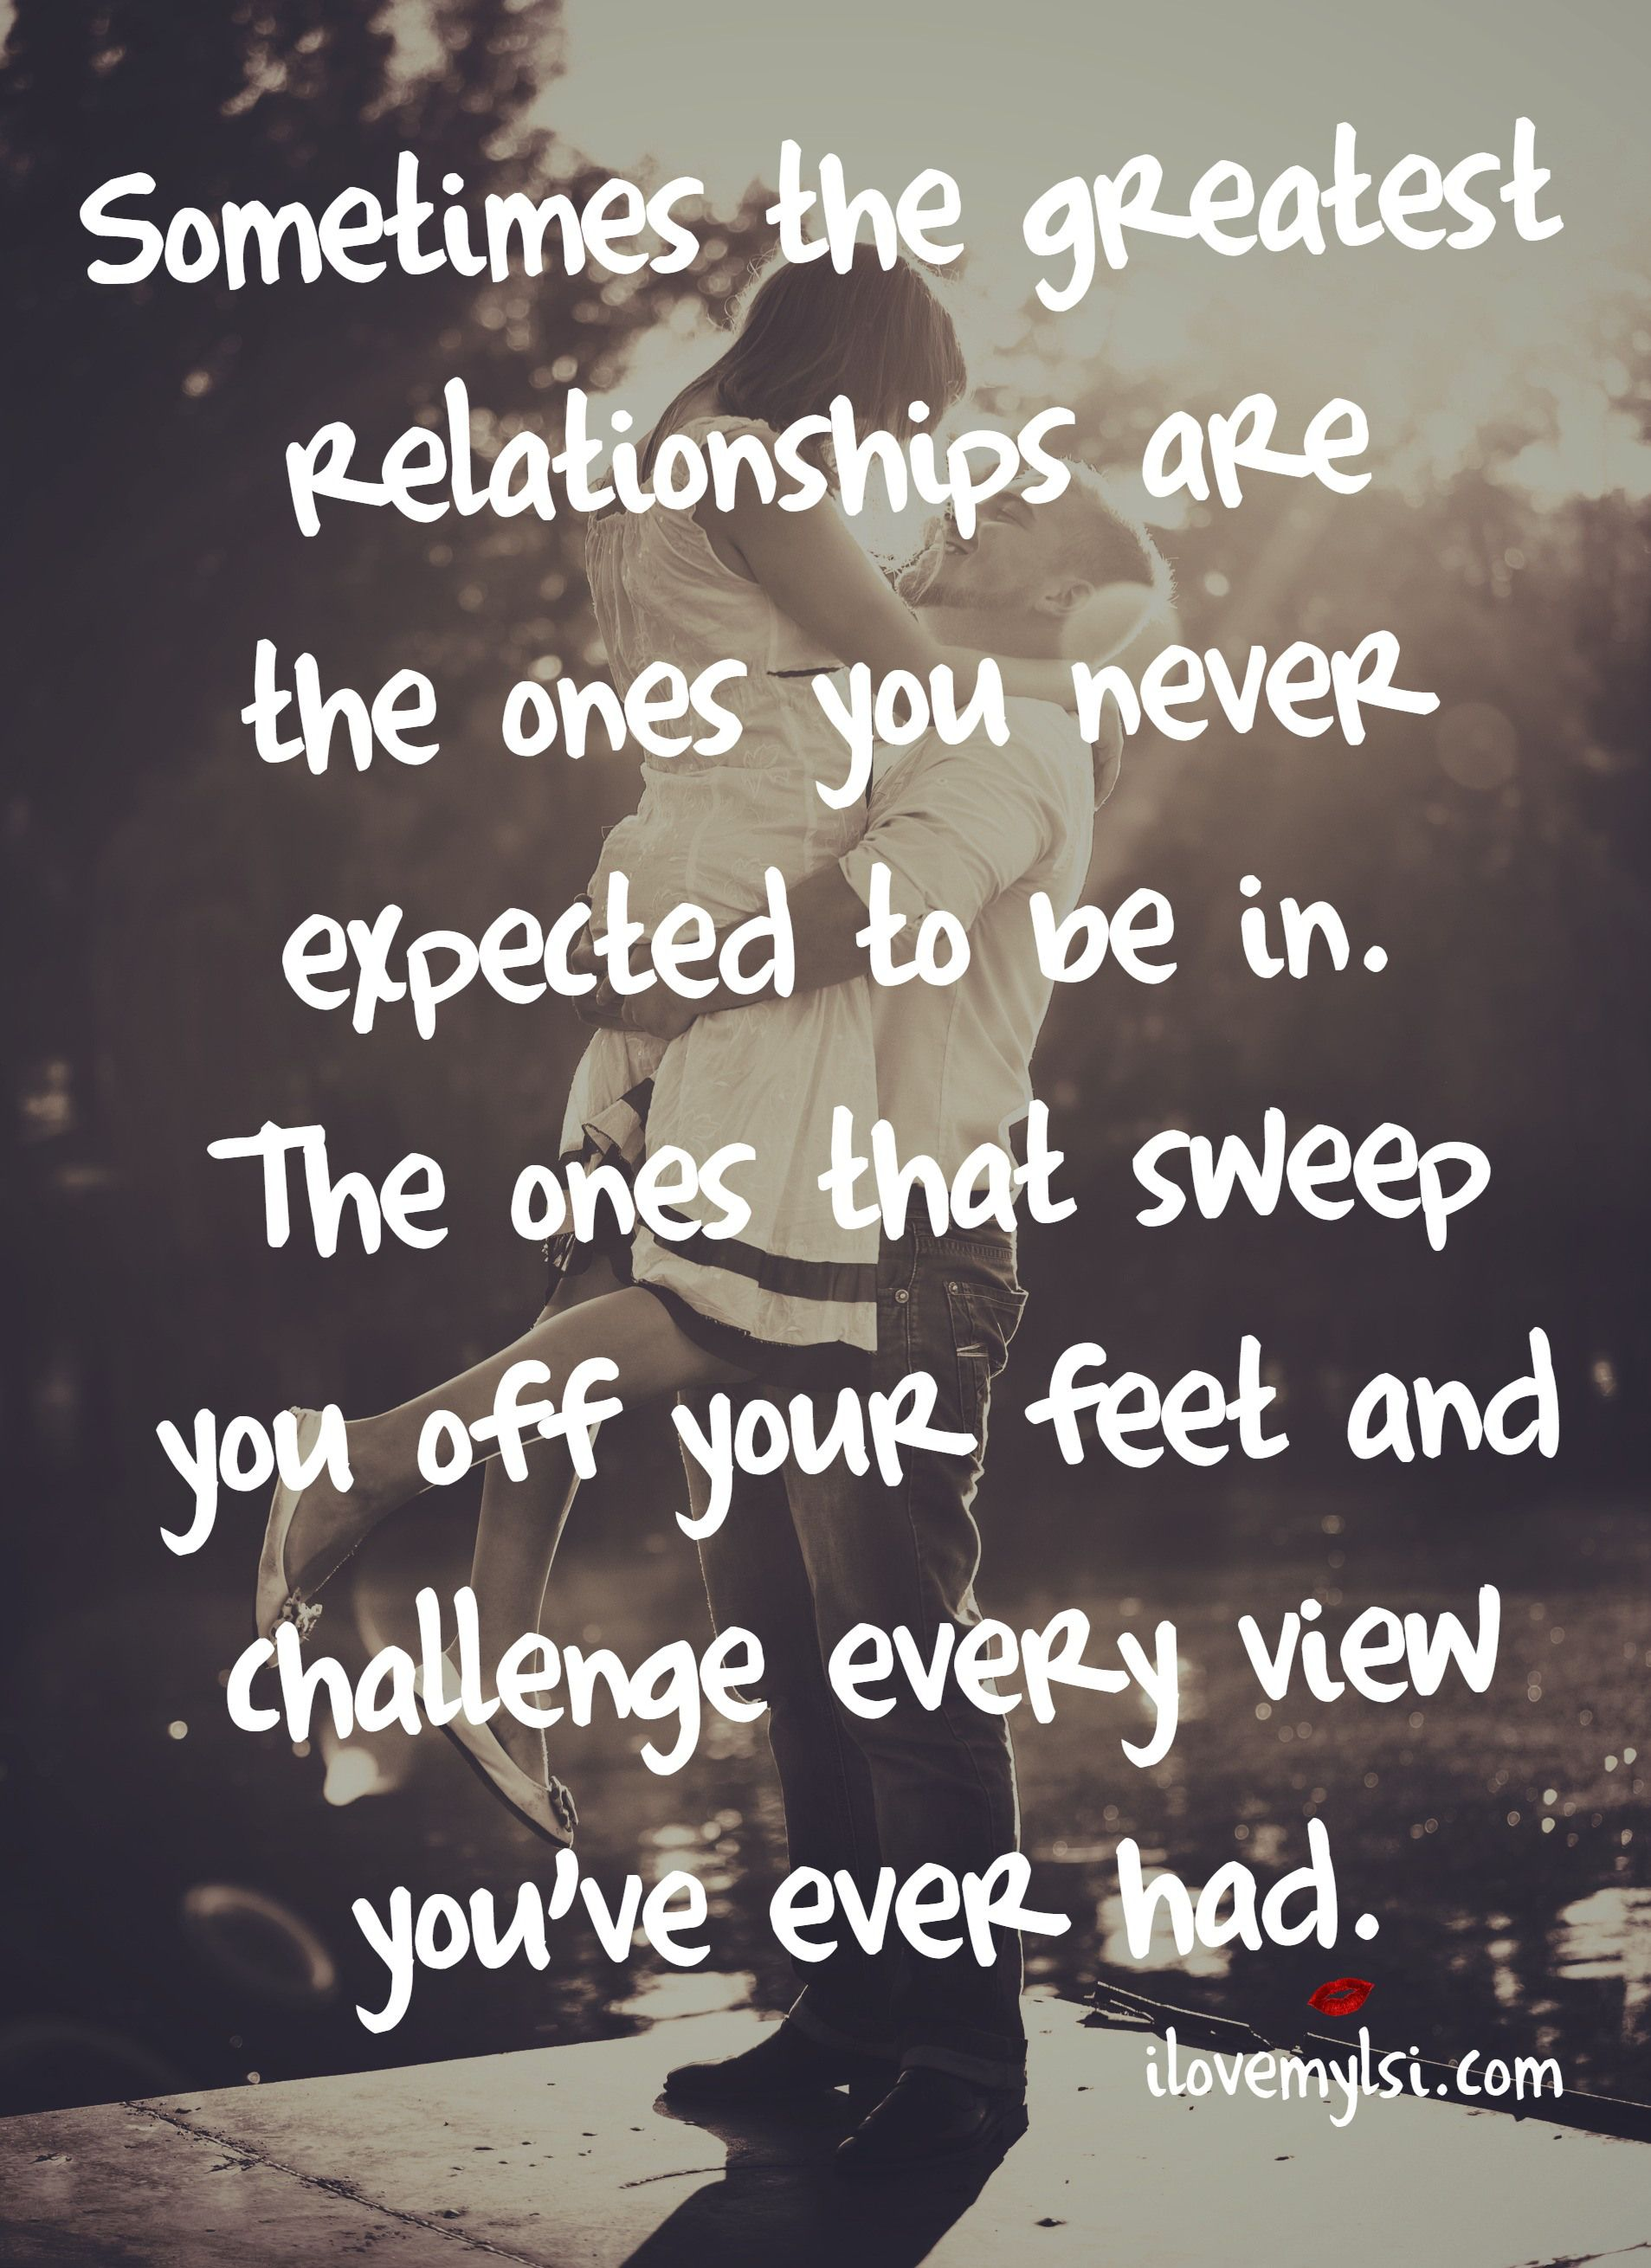 Sometimes the greatest relationships are the ones you never expected to be in The ones